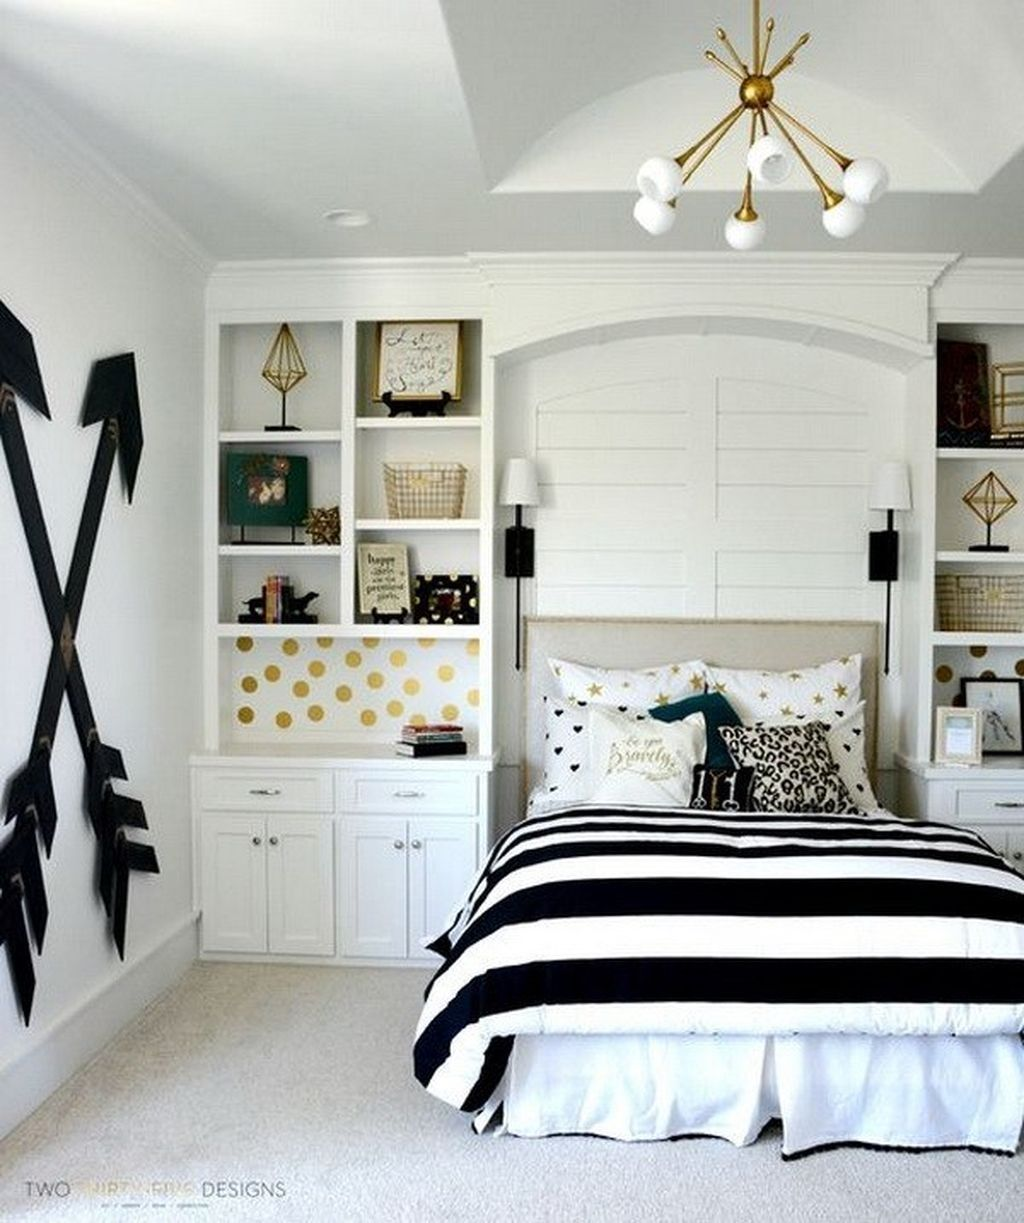 Epingle Sur Decoration Chambre